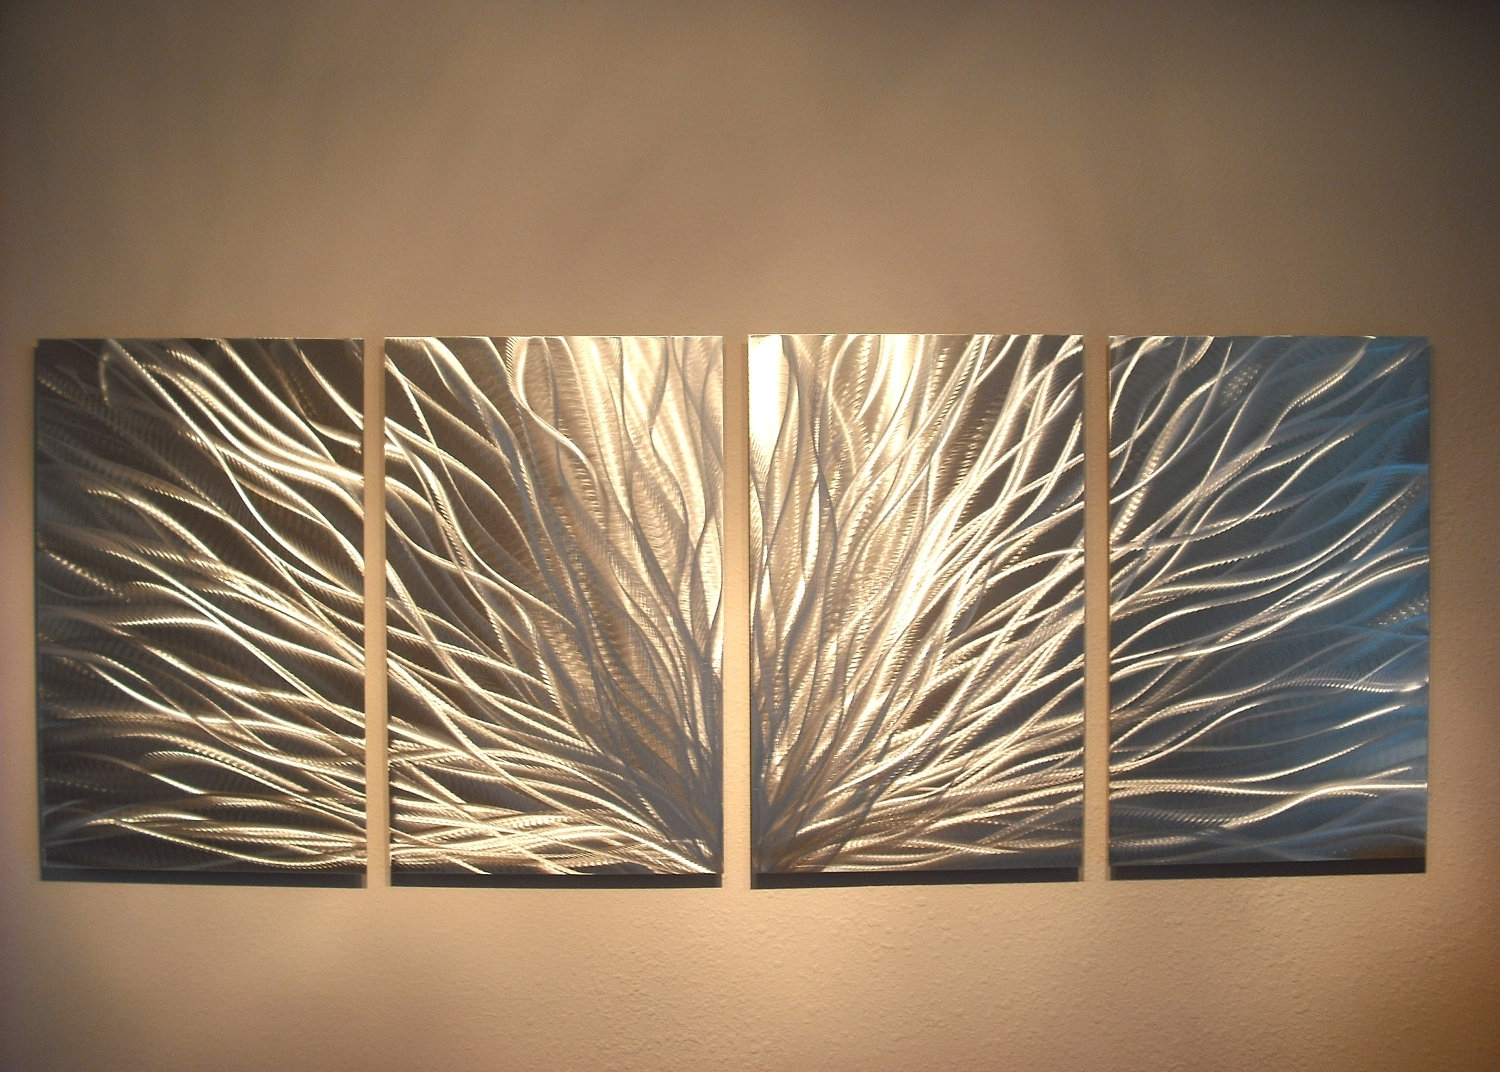 Radiance – Abstract Metal Wall Art Contemporary Modern Decor Regarding Newest Abstract Metal Wall Art Painting (Gallery 10 of 20)